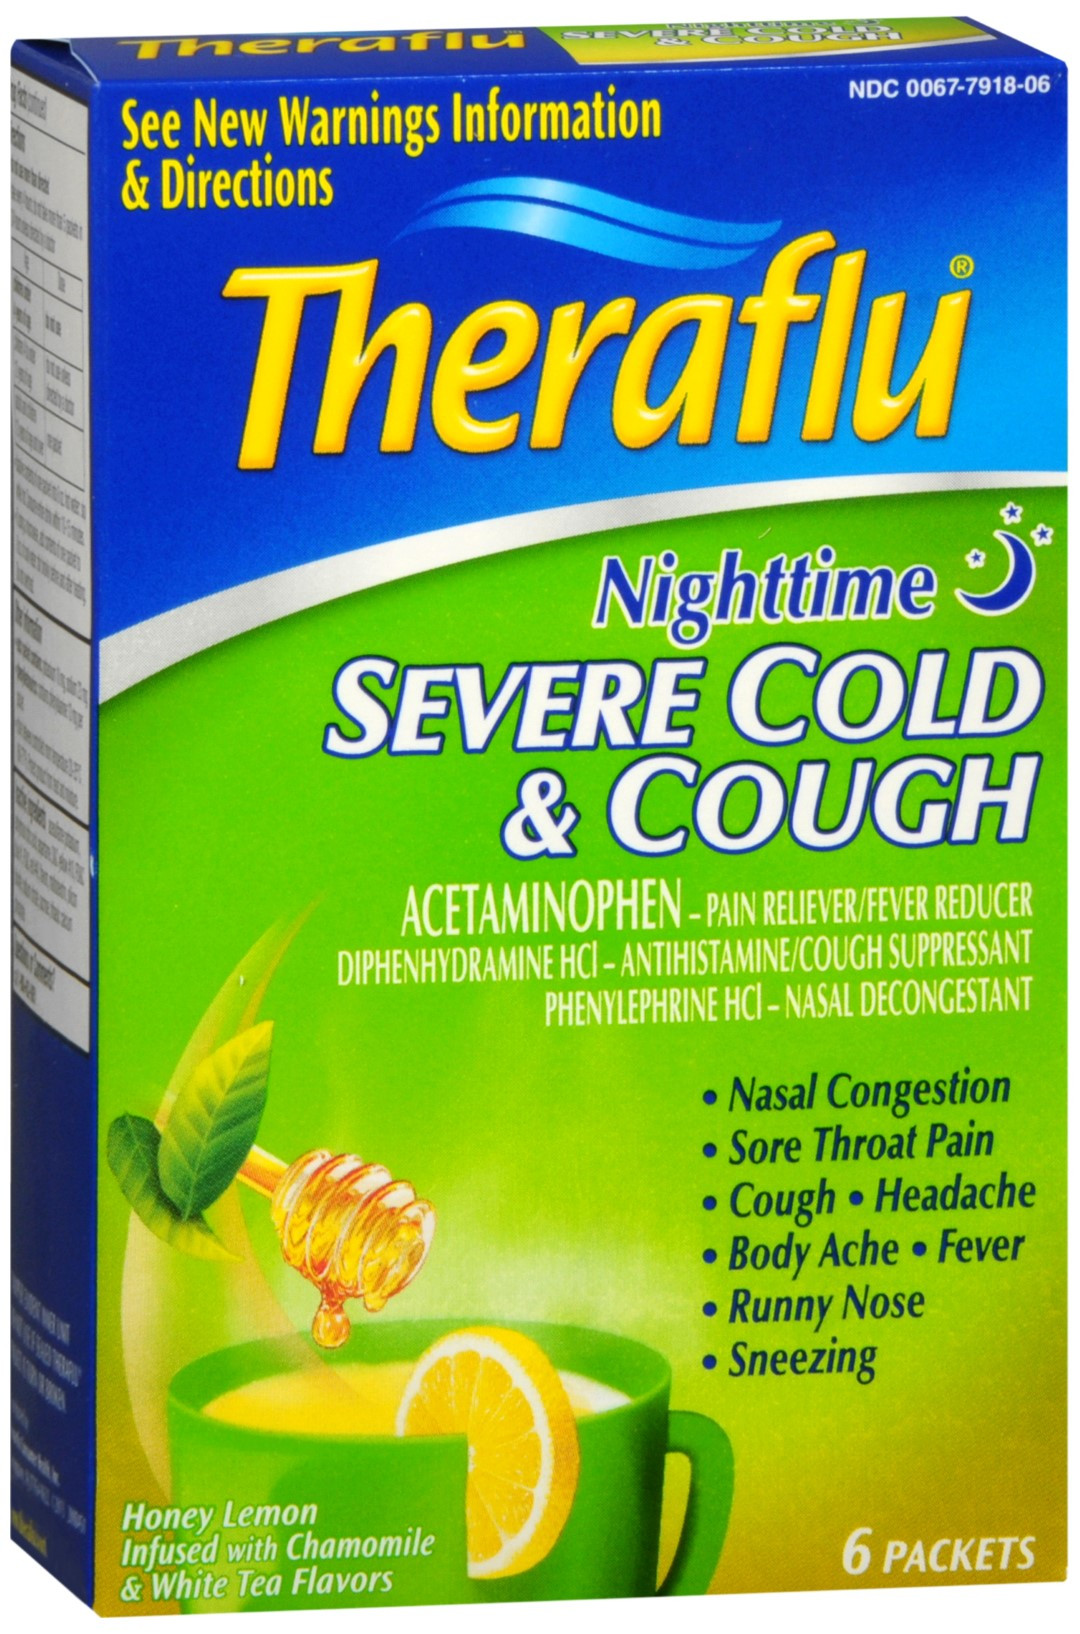 Cold & Allergy | Asti's South Hills Pharmacy